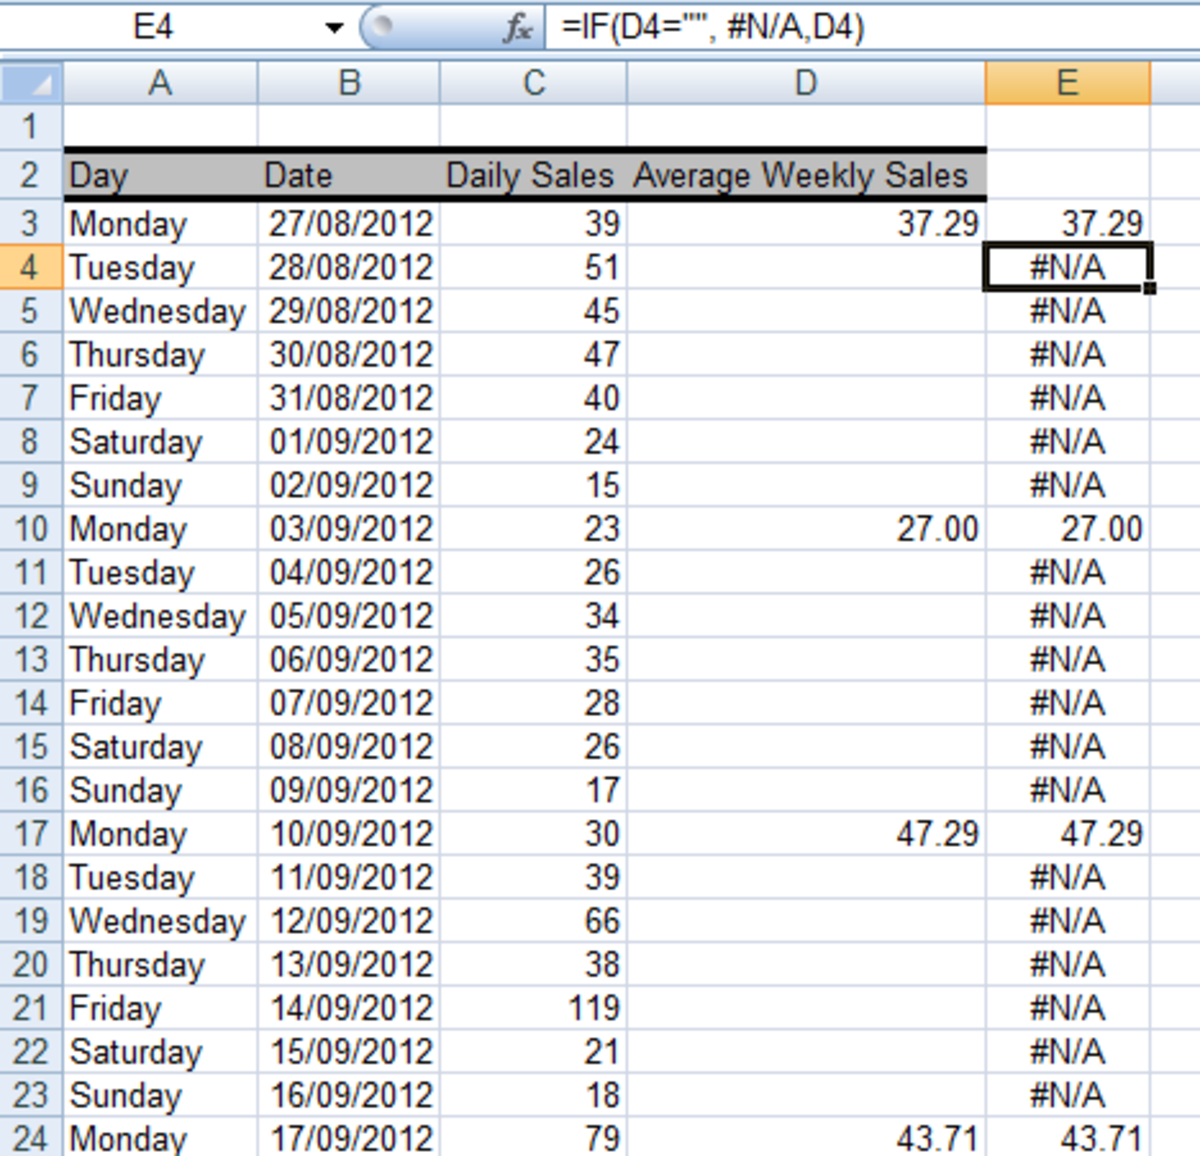 Ediblewildsus  Pleasant How To Get Excel  And  To Ignore Empty Cells In A Chart Or  With Heavenly Using The If Function In A Formula To Convert Empty Cells To Na With Astonishing Create A Checkbox In Excel Also Create A Budget In Excel In Addition How To Replace Words In Excel And How To Make An Invoice In Excel As Well As Print Preview Excel  Additionally Budgeting Excel Template From Turbofuturecom With Ediblewildsus  Heavenly How To Get Excel  And  To Ignore Empty Cells In A Chart Or  With Astonishing Using The If Function In A Formula To Convert Empty Cells To Na And Pleasant Create A Checkbox In Excel Also Create A Budget In Excel In Addition How To Replace Words In Excel From Turbofuturecom